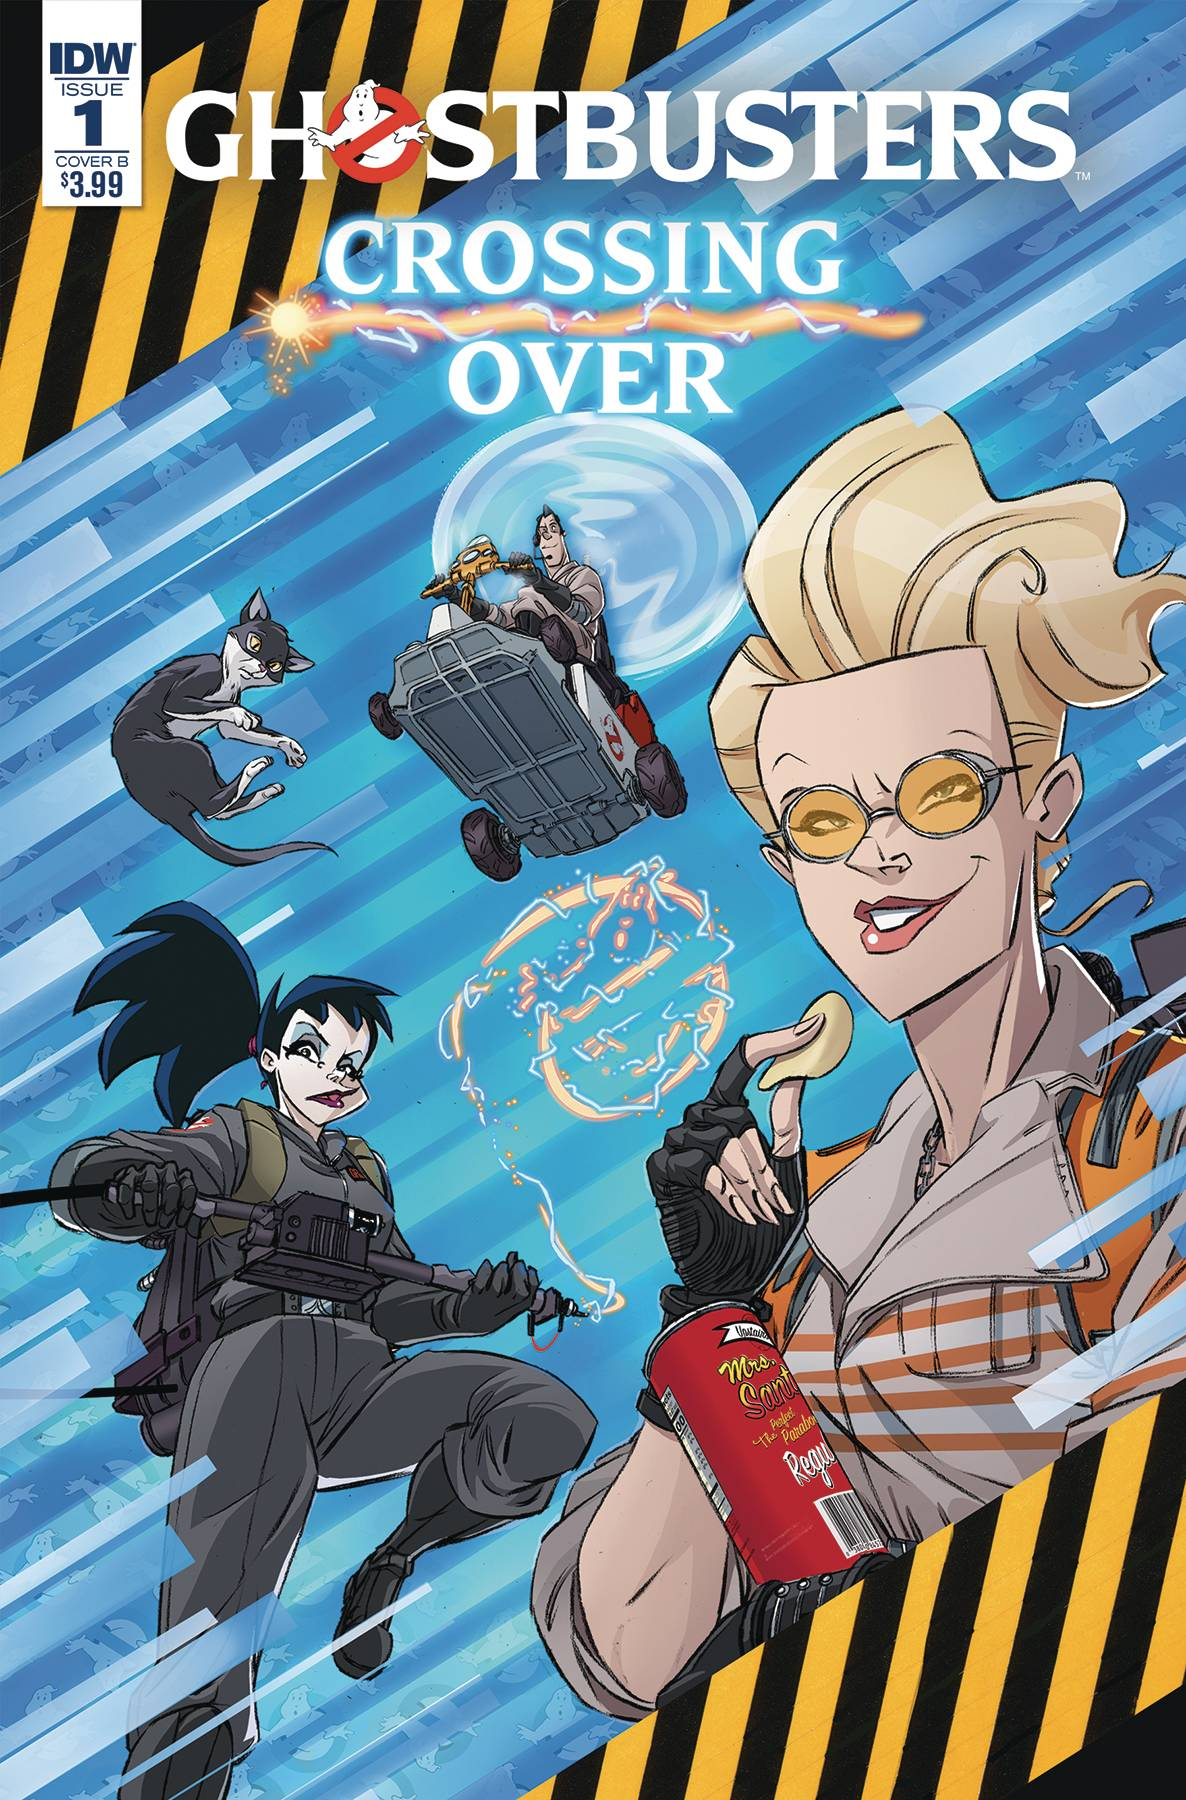 GHOSTBUSTERS CROSSING OVER #1